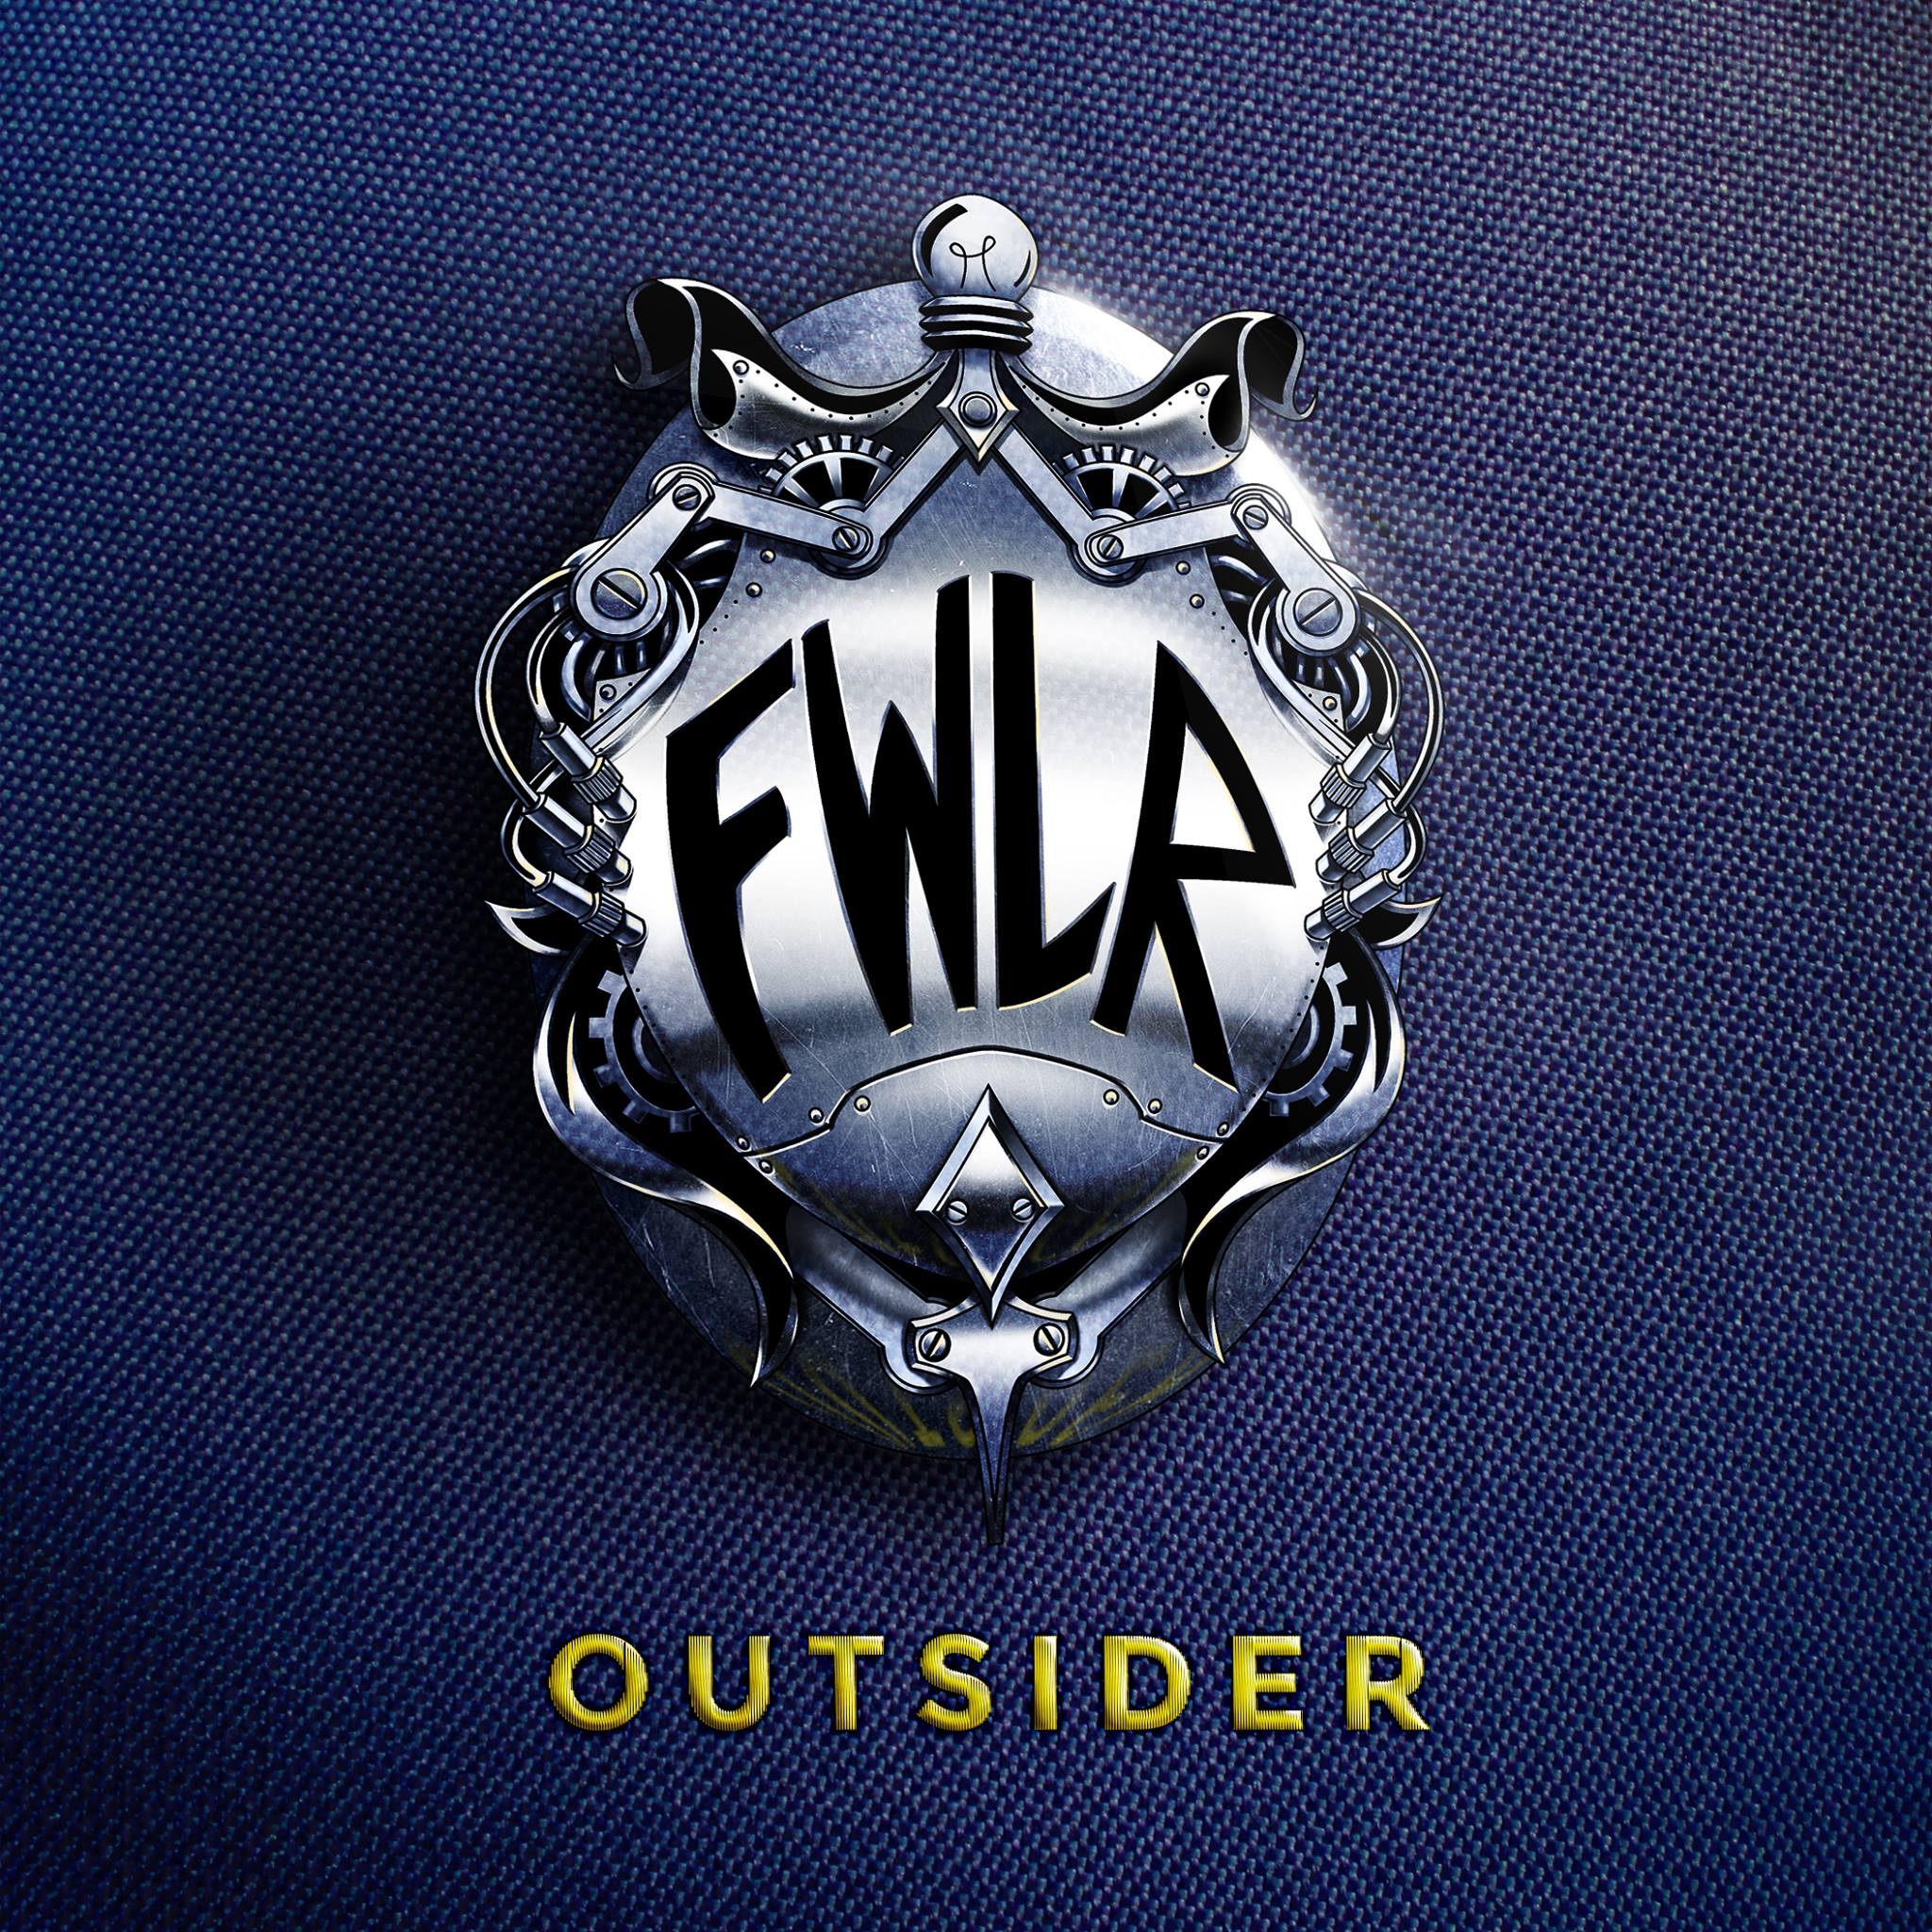 SectionZ Records Closes Its Doors With One Last Release: FWLR's Debut 'Outsider' EP